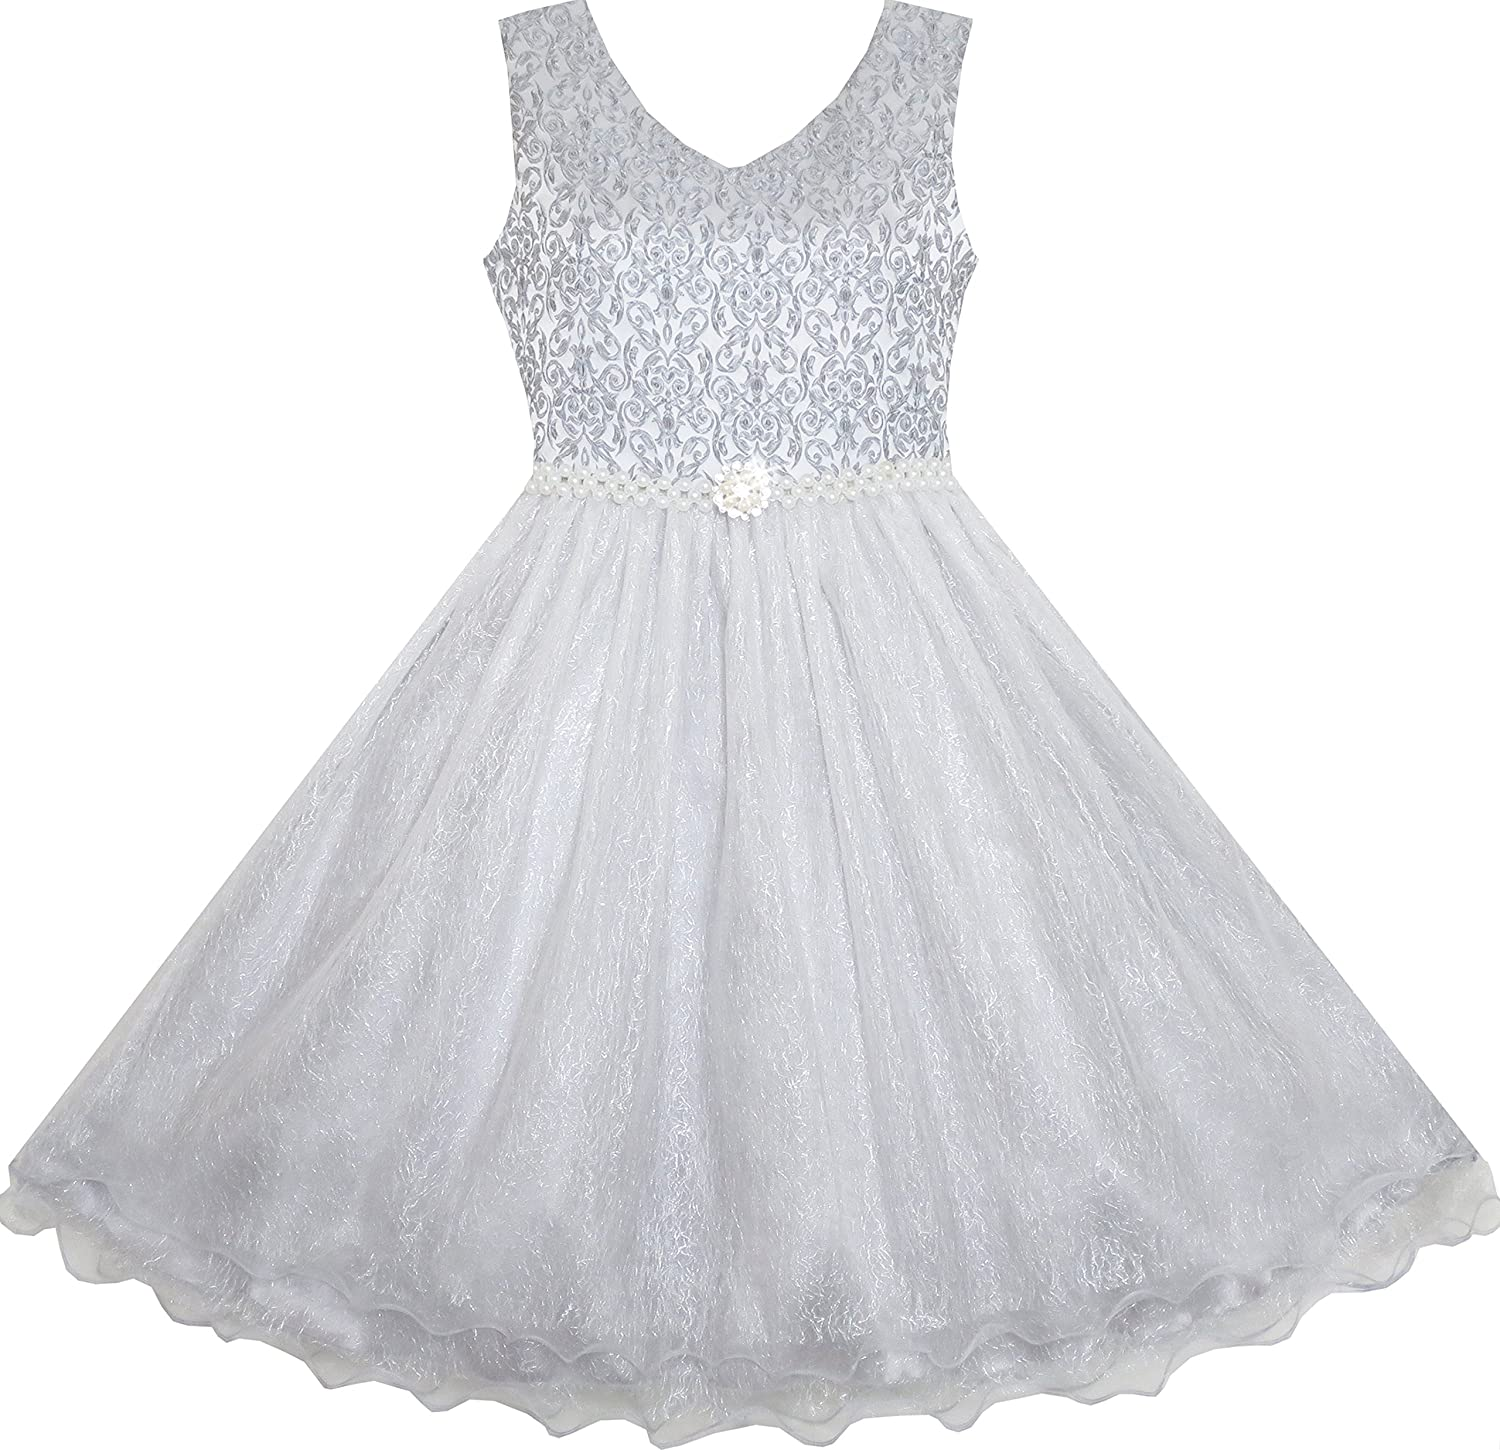 be6f395c7 Amazon.com  Sunny Fashion Flower Girl Dress Sparkling Pearl Belt ...